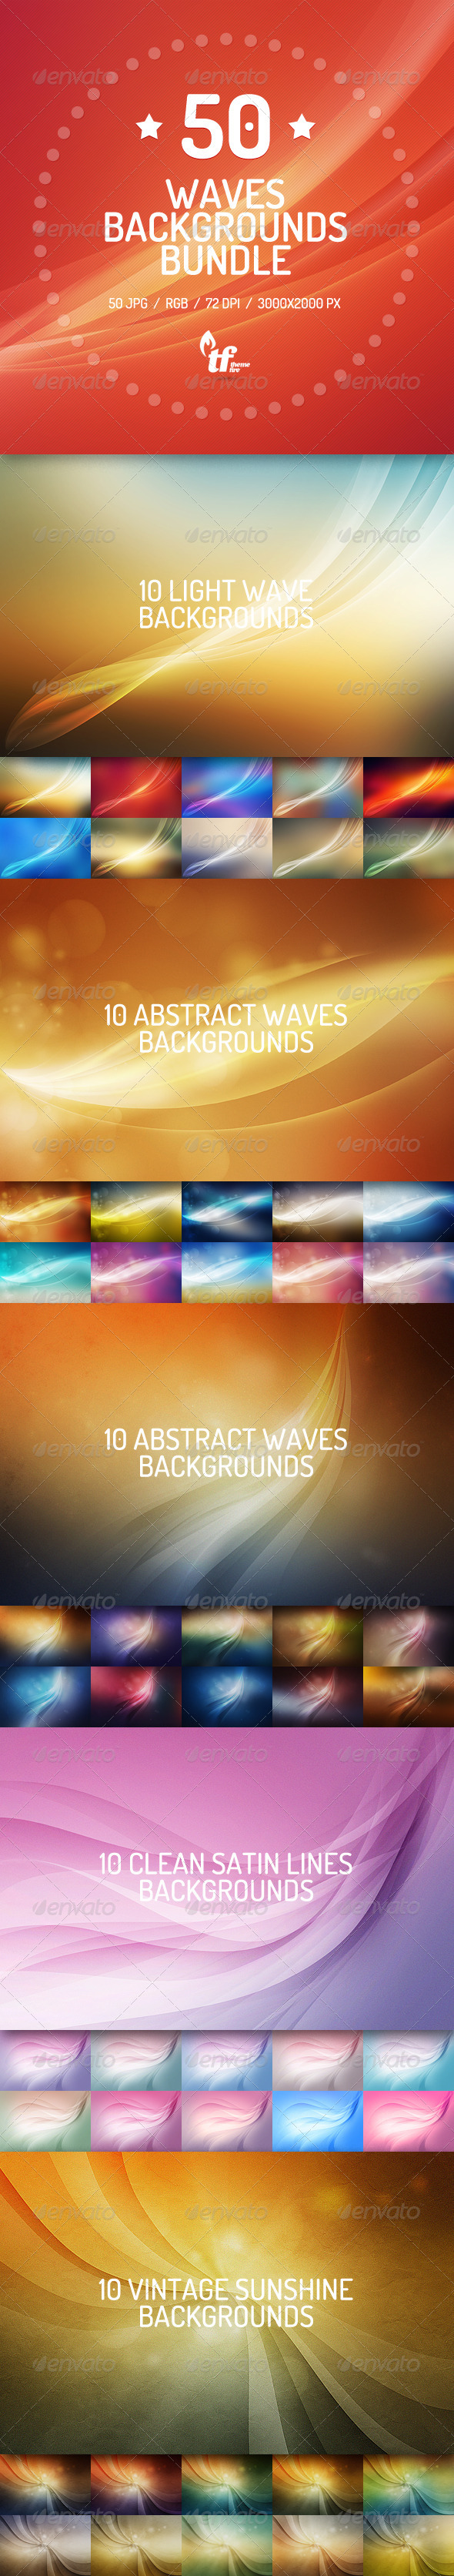 GraphicRiver 50 Abstract Waves Backgrounds Bundle 7593387